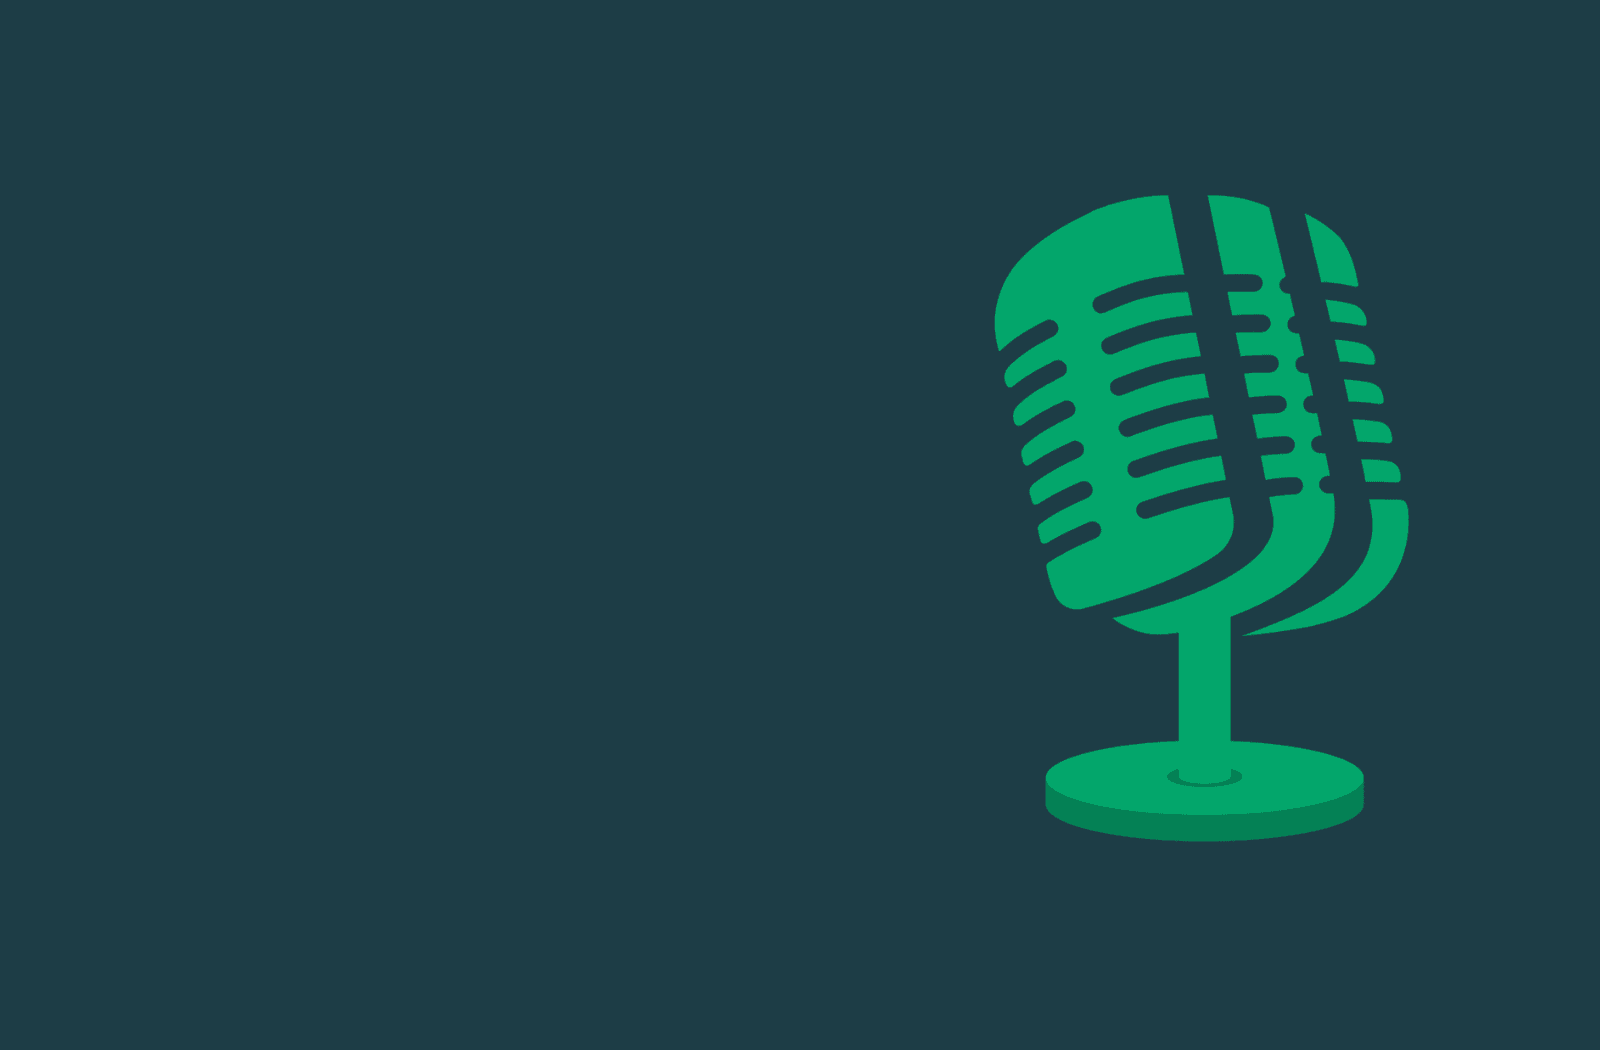 Podcast Insights Learn How To Start Grow And Monetize Your Podcast